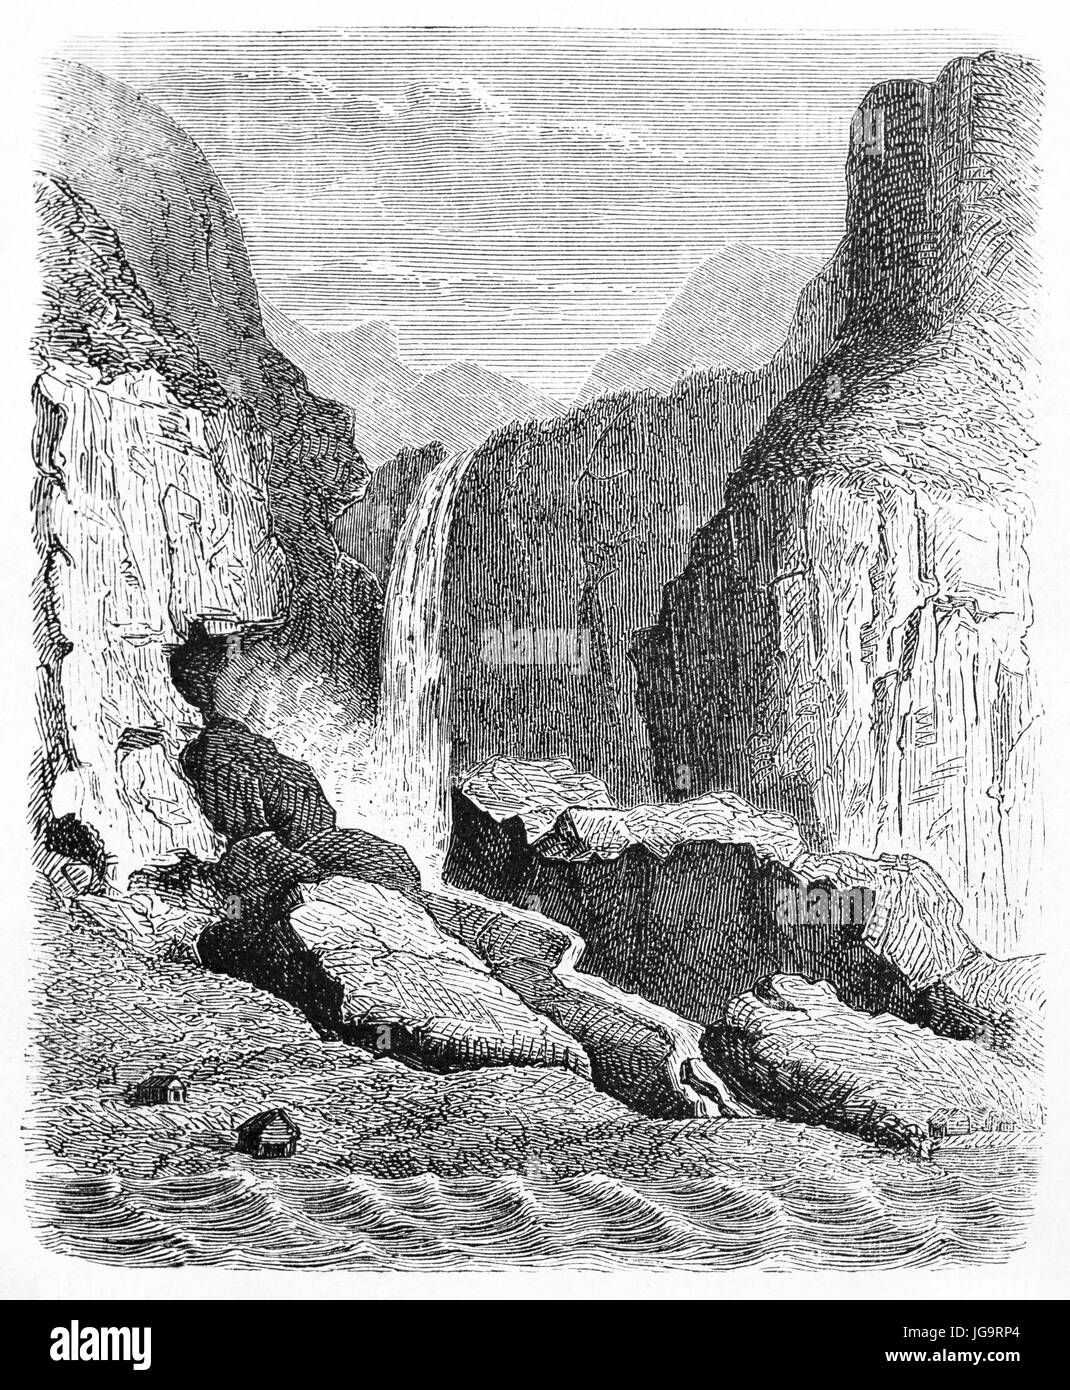 Old view of Opthun waterfalls, Norway. By unidentified author, published on Le Tour du Monde, Paris, 1861 - Stock Image